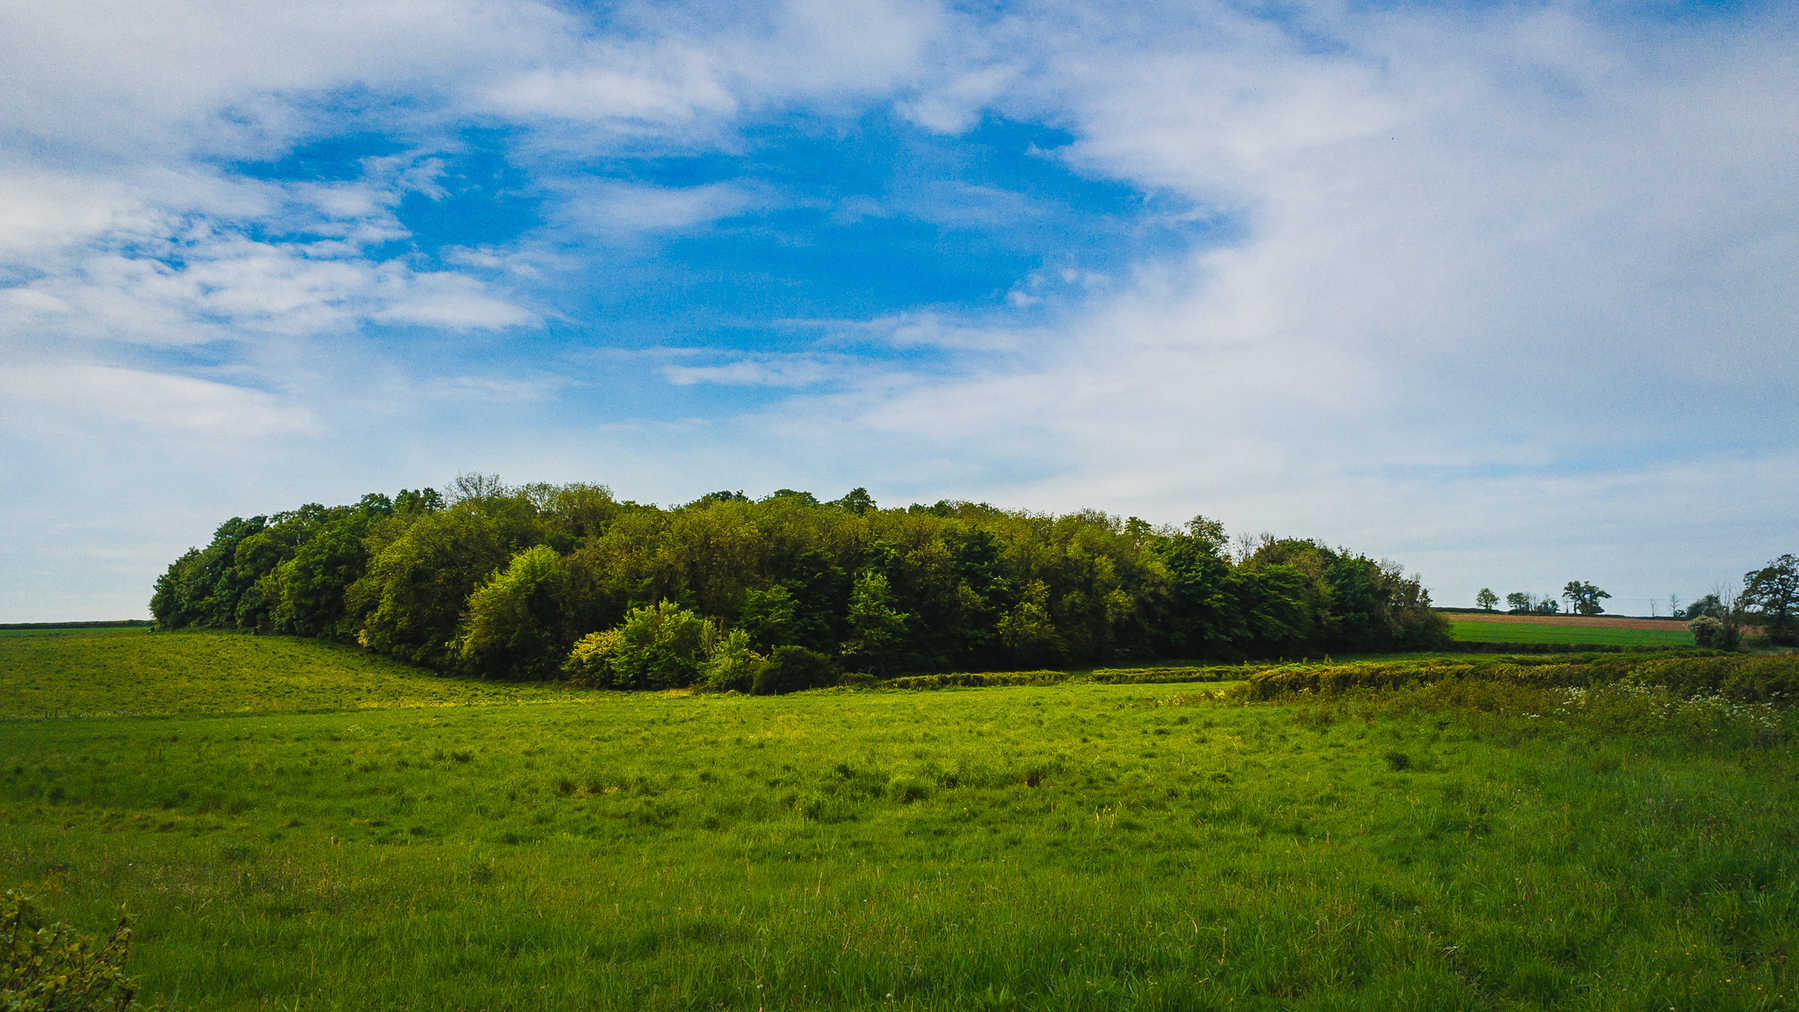 photo of trees in the countryside